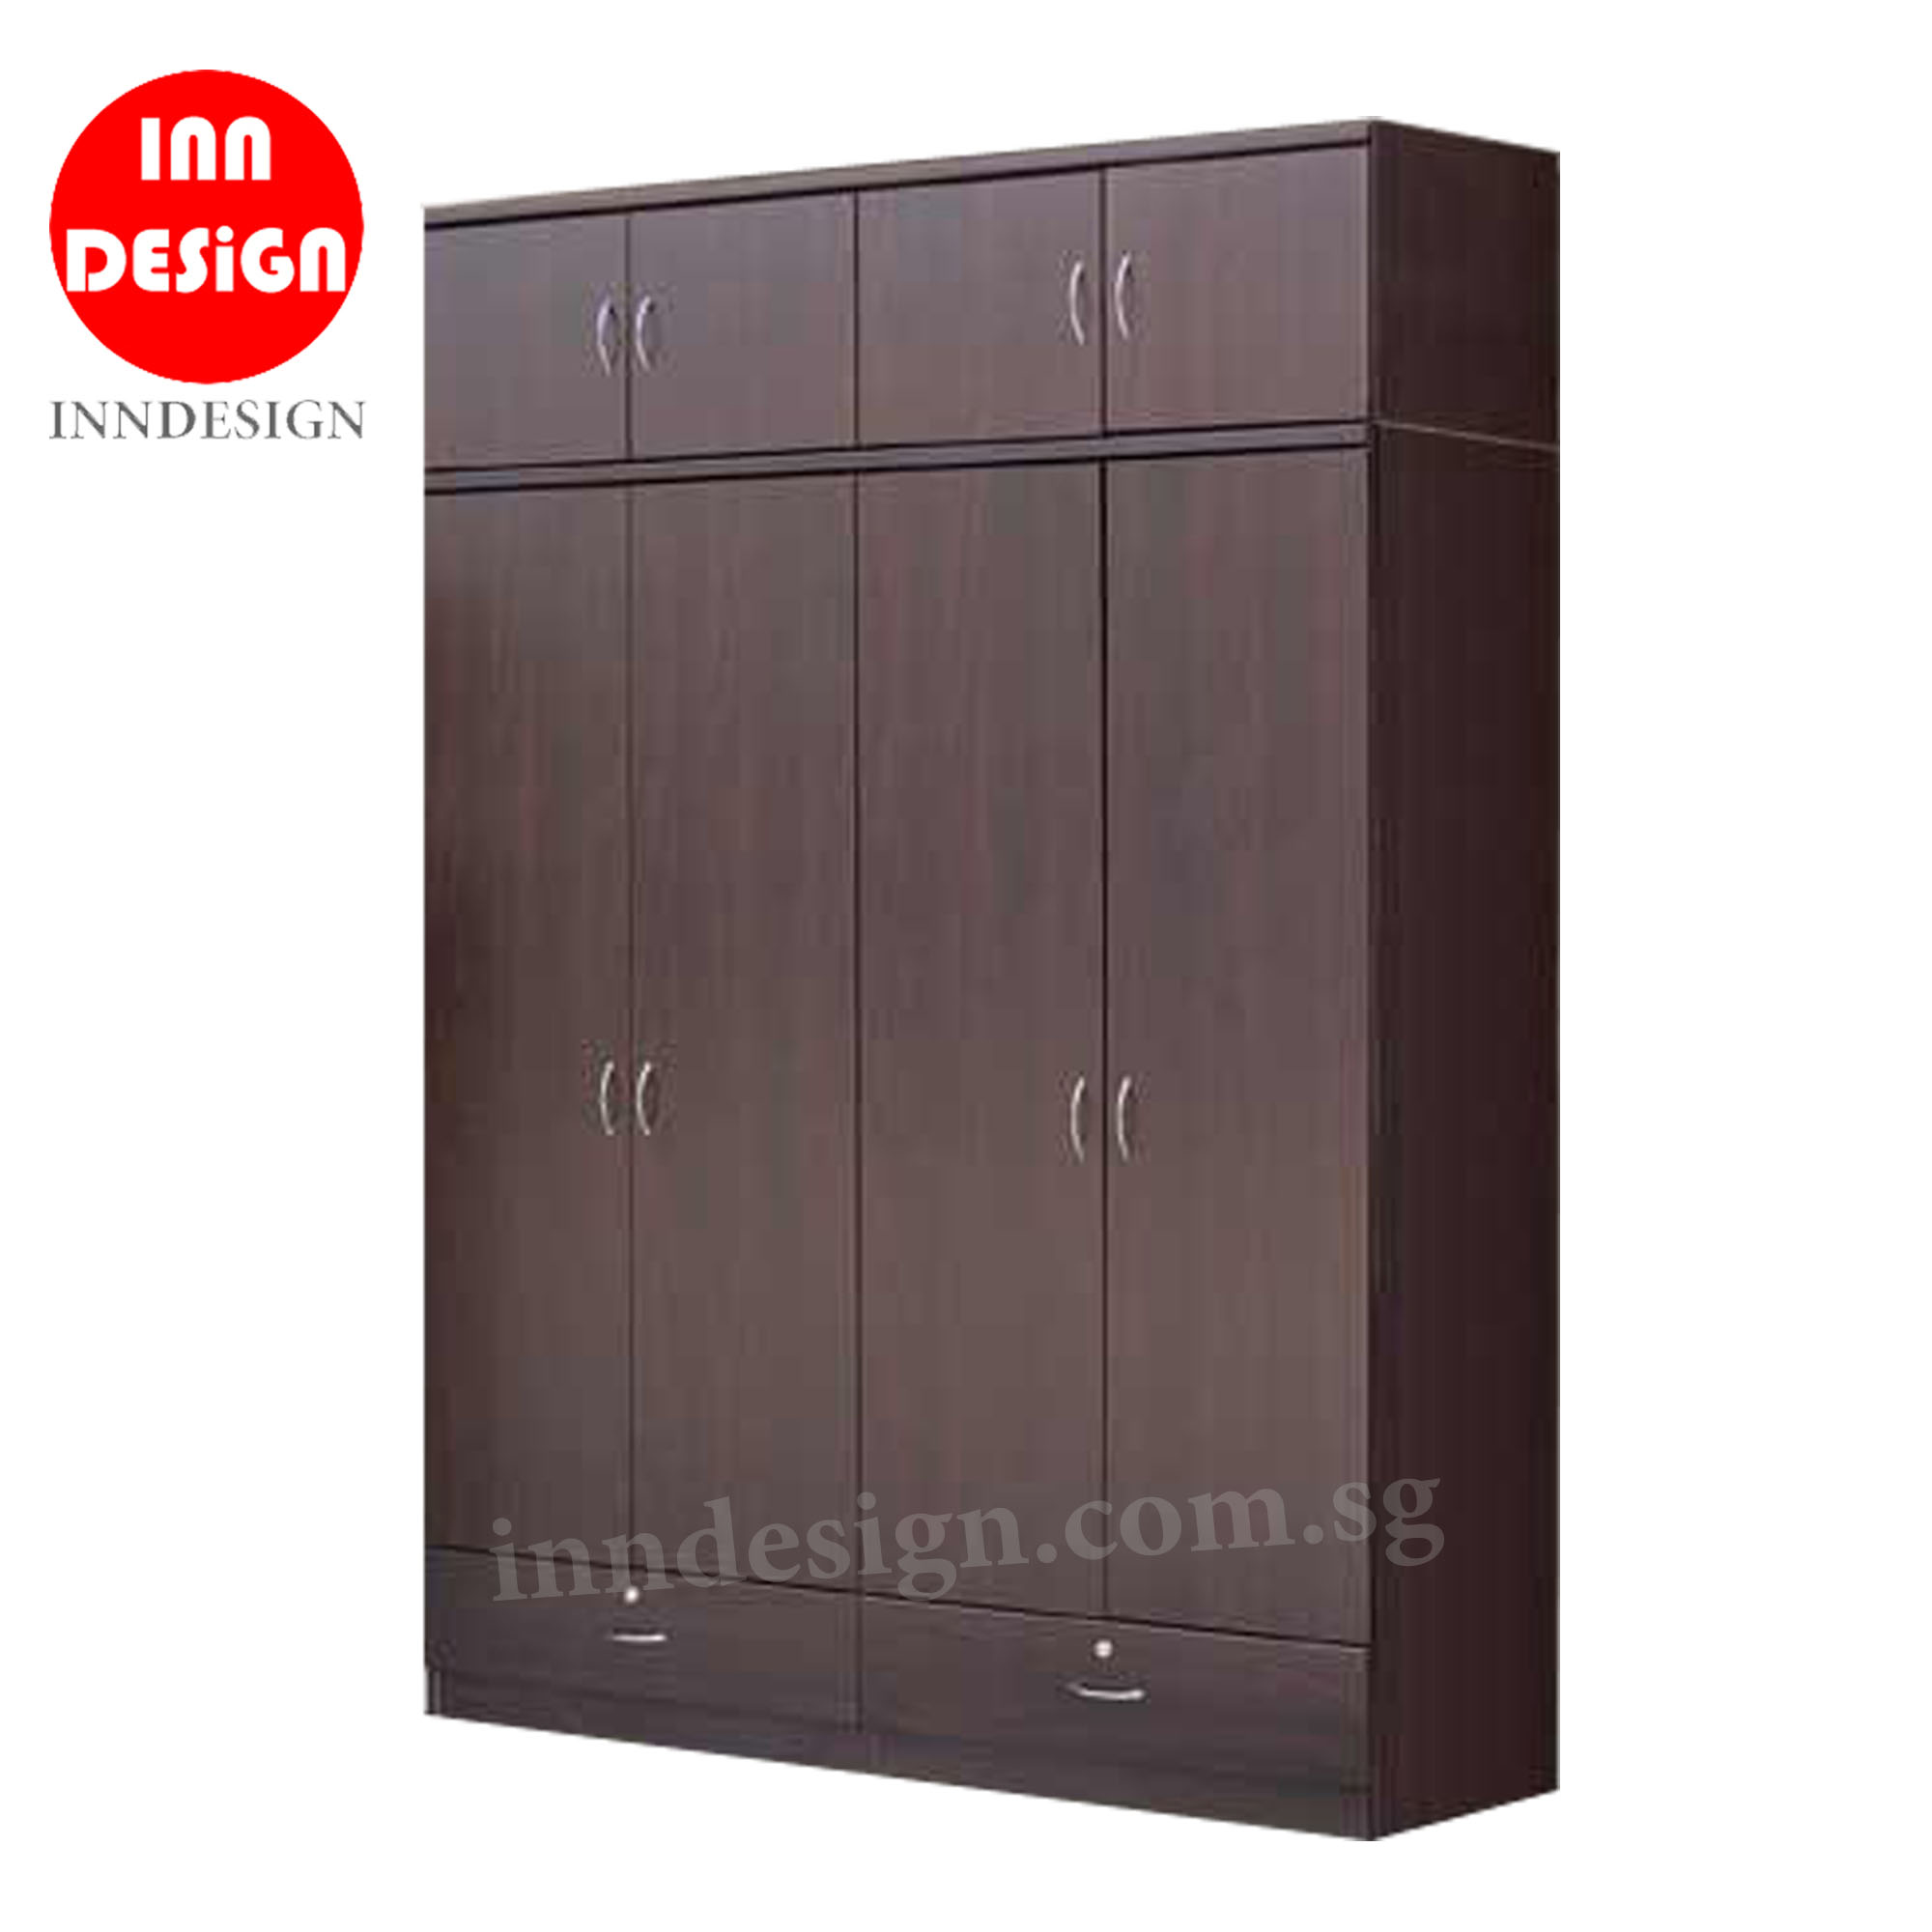 5ft 8 Doors Wardrobe With Drawers (Cherry)